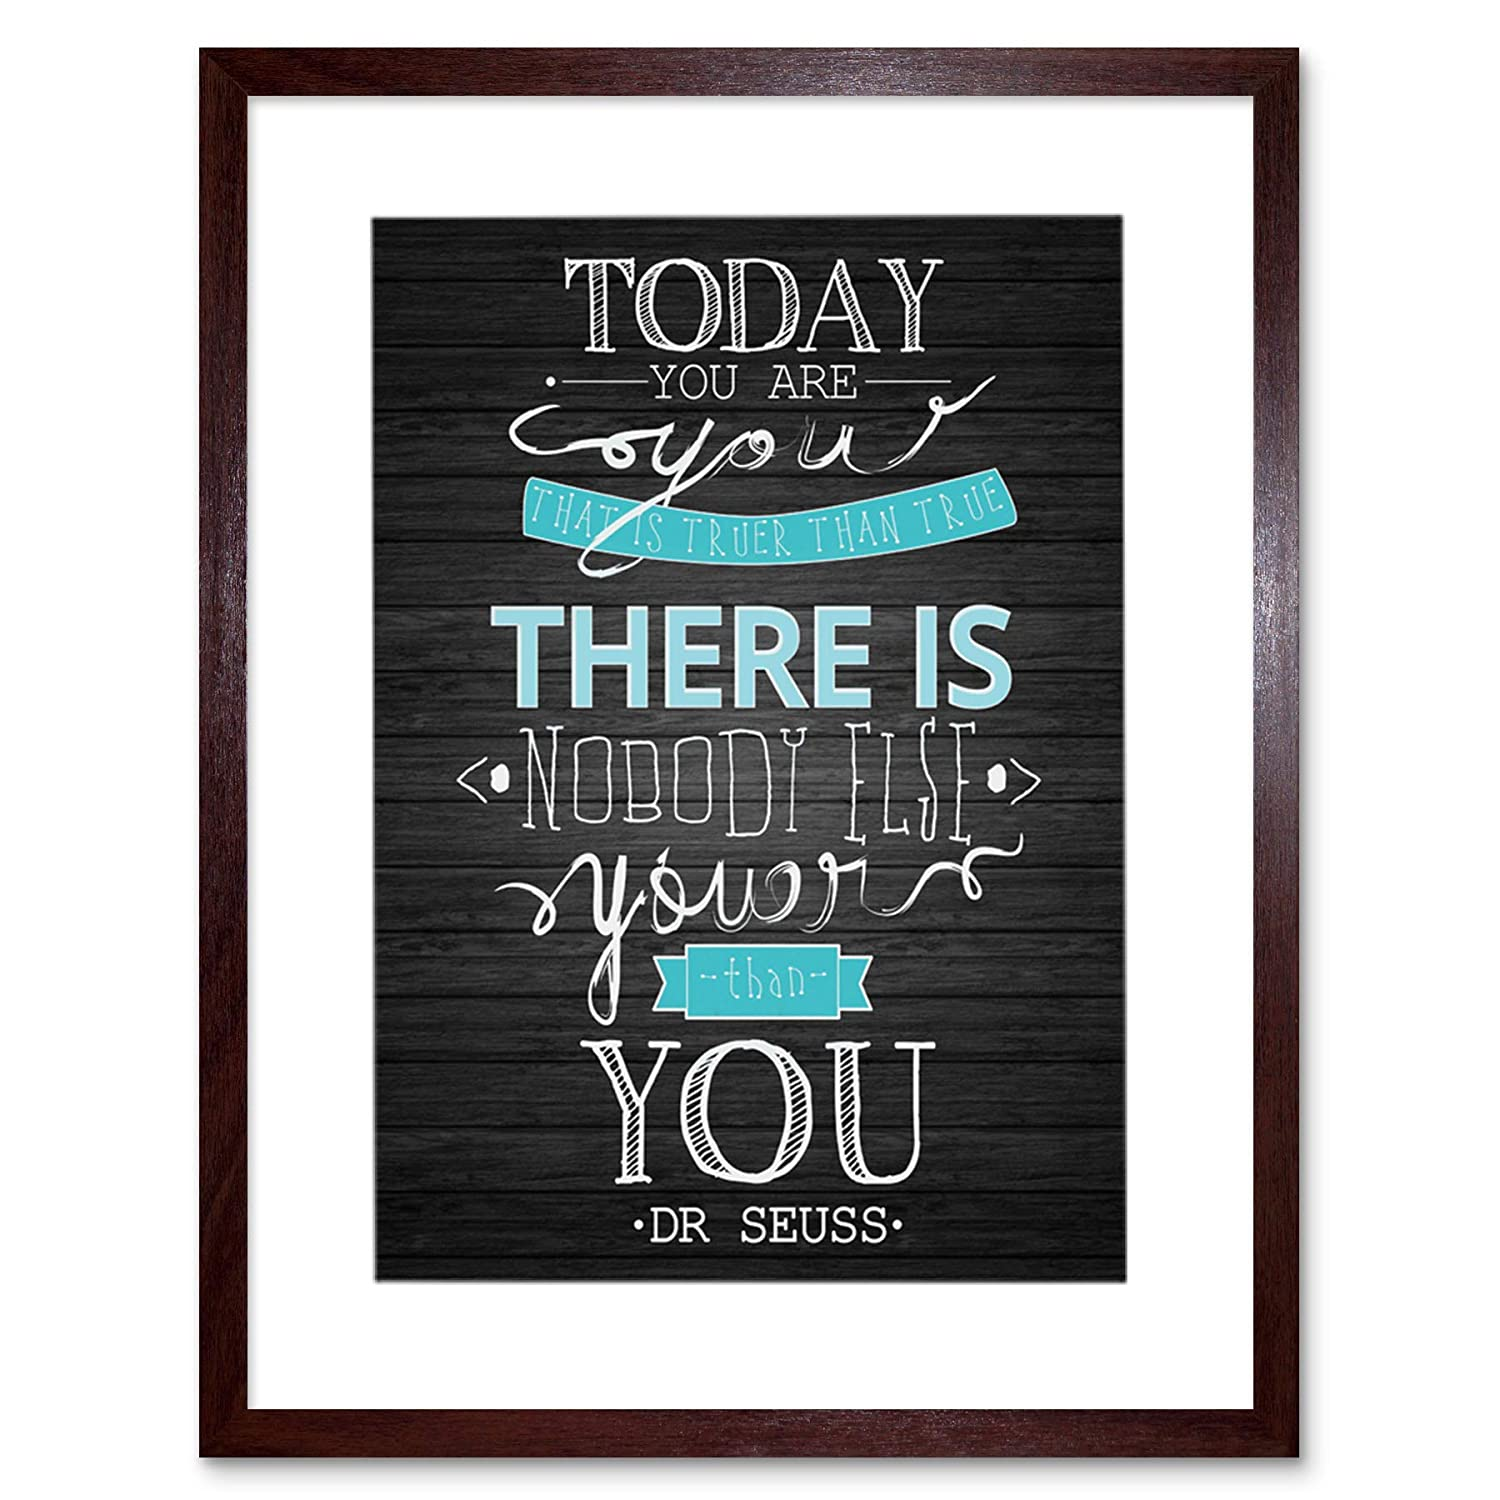 Today You are YOUER DR Seuss Quote ON Black Frame Art Print Picture F12X1180 The Art Stop